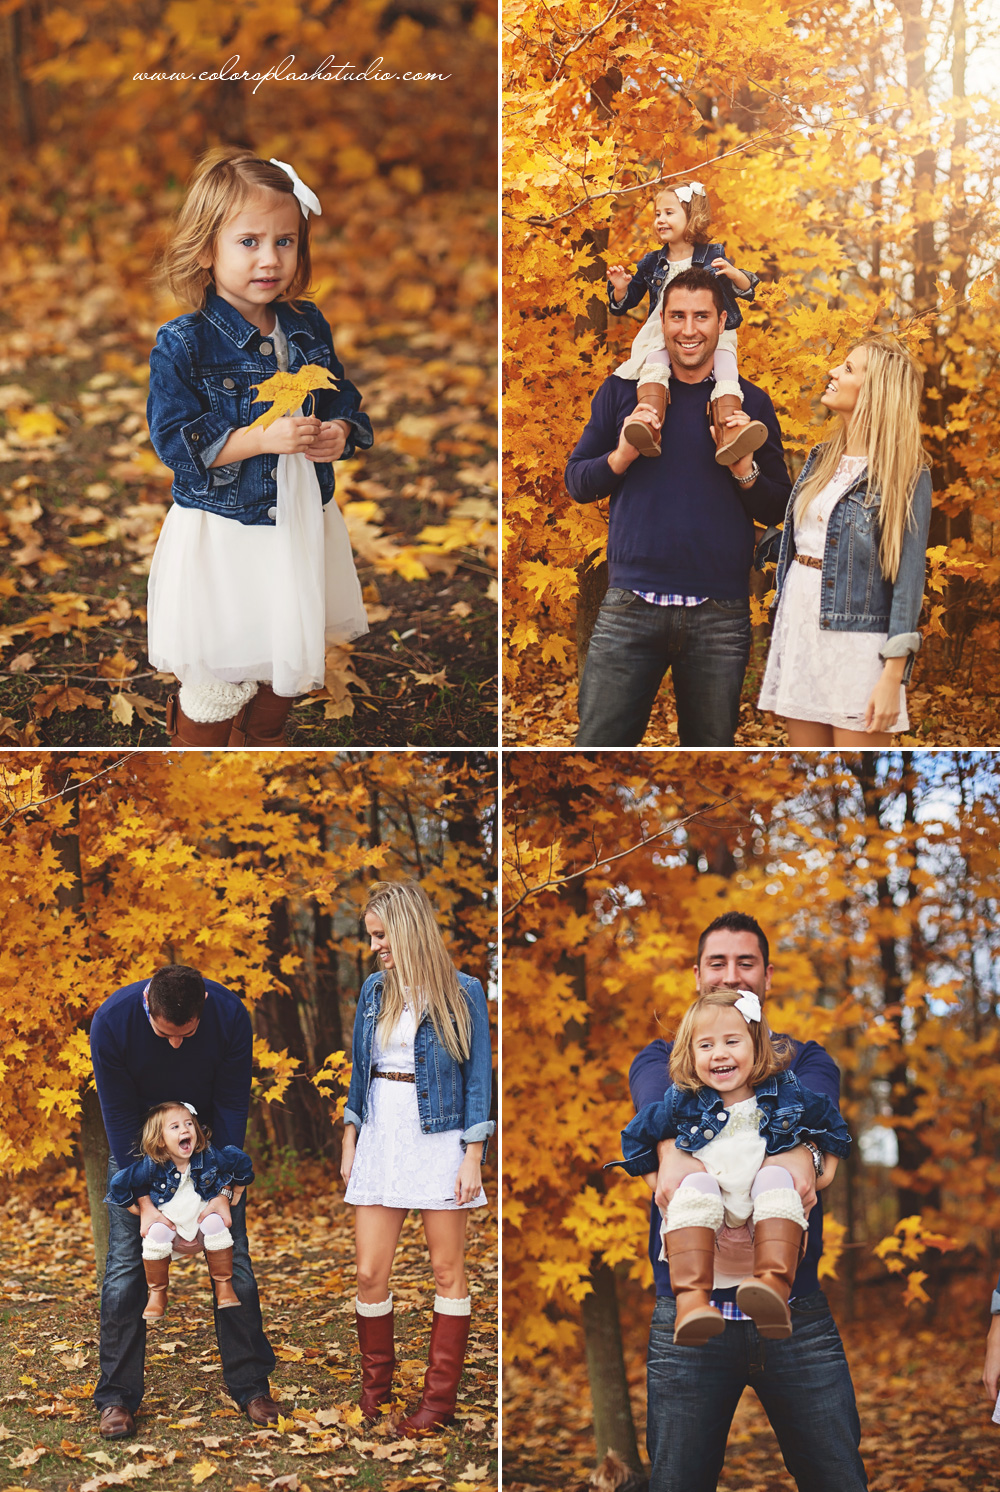 byers family fall photos kalamazoo family photographer color